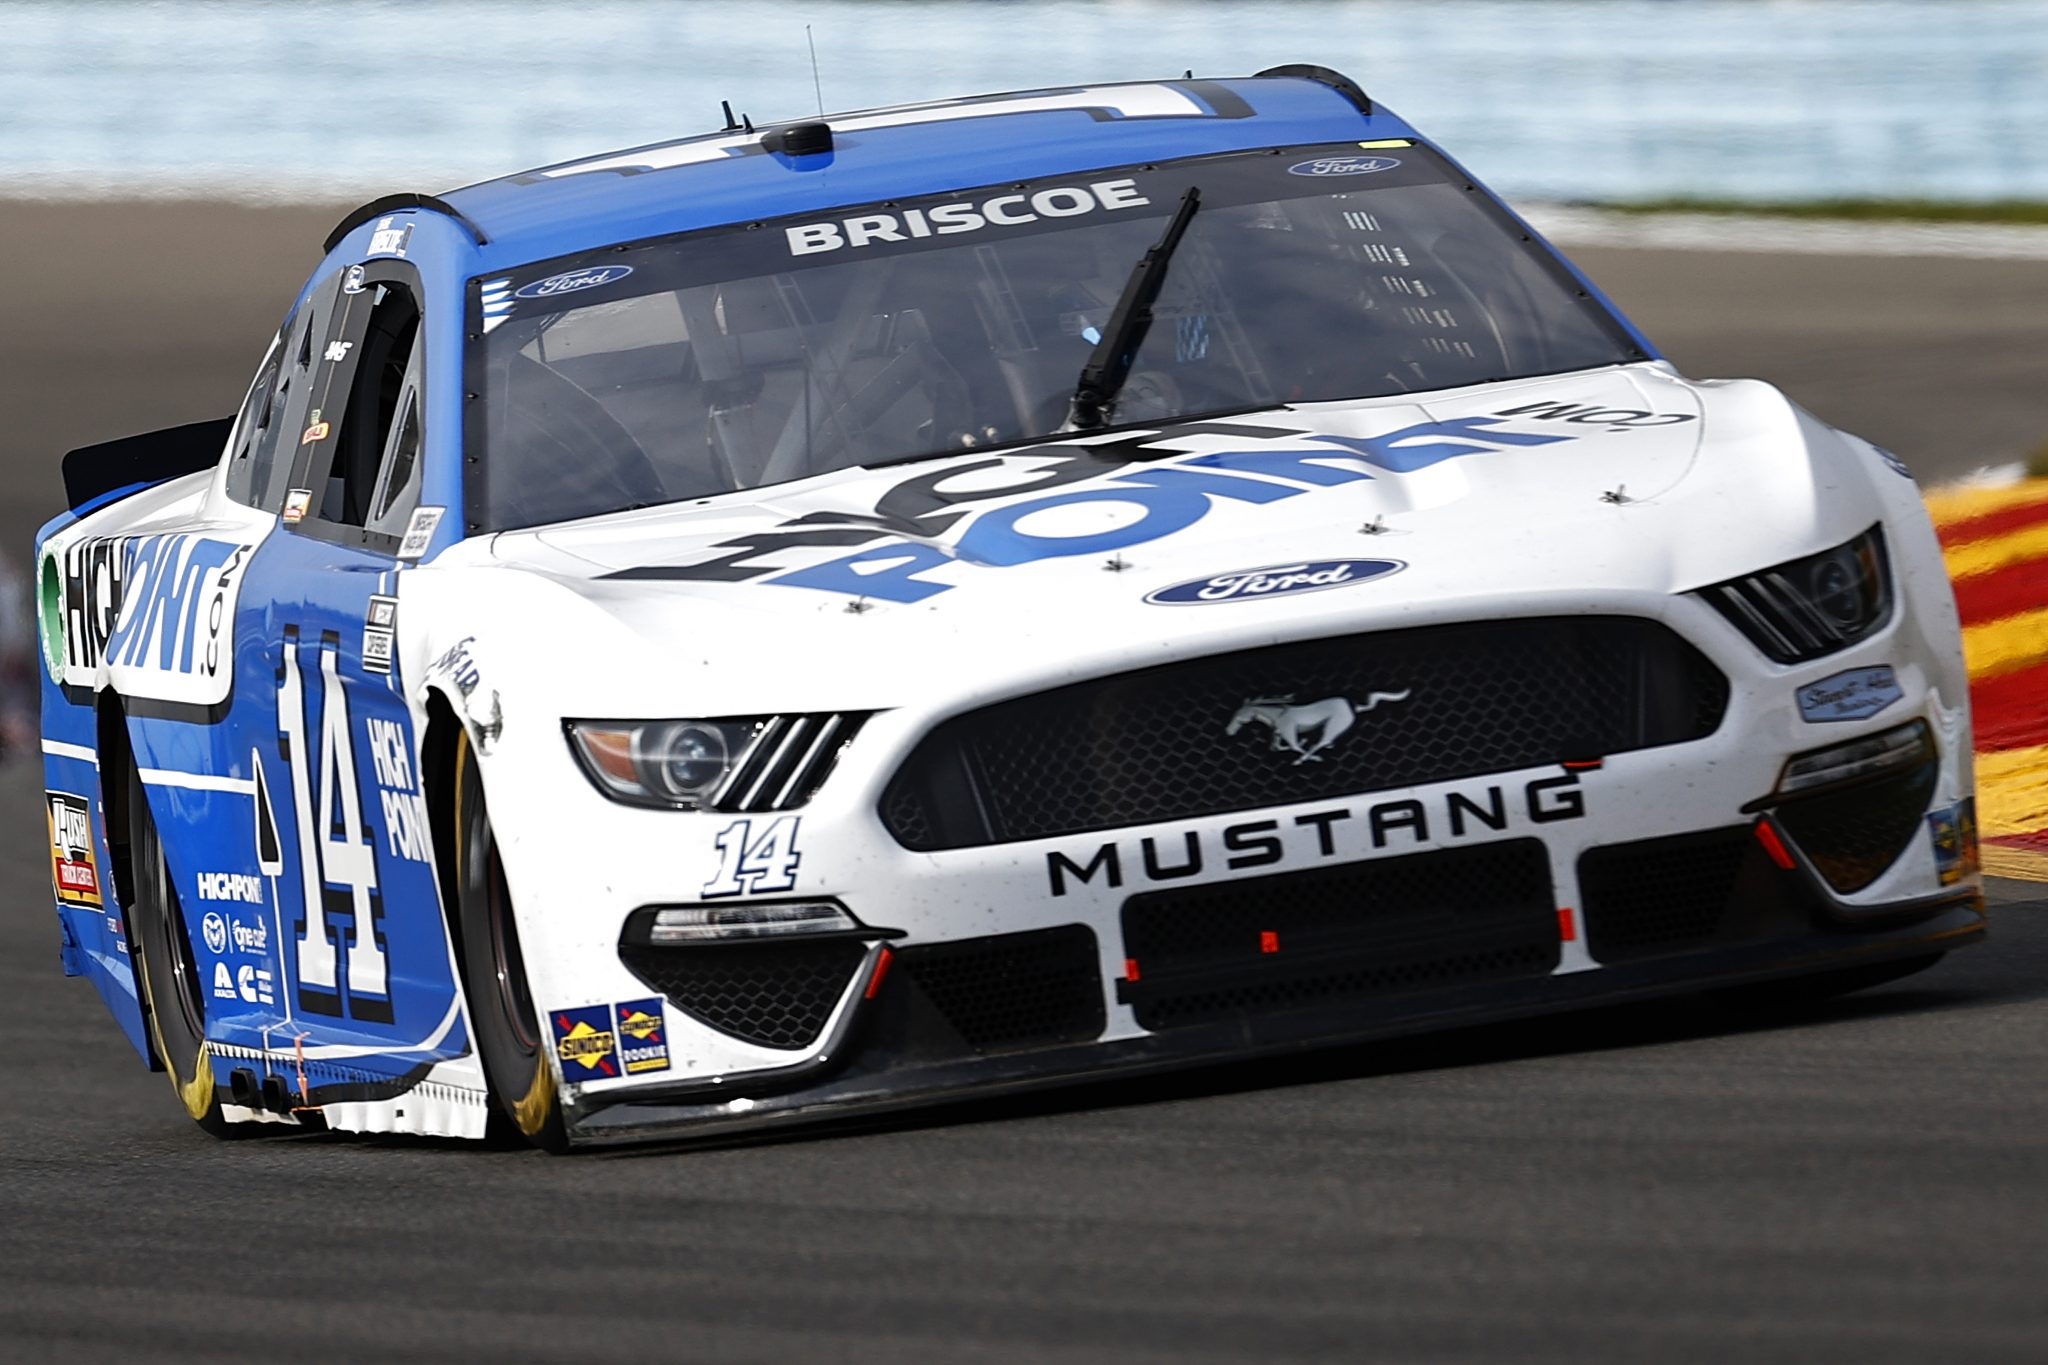 WATKINS GLEN, NEW YORK - AUGUST 08: Chase Briscoe, driver of the #14 HighPoint.com Ford, drives during the NASCAR Cup Series Go Bowling at The Glen at Watkins Glen International on August 08, 2021 in Watkins Glen, New York. (Photo by Jared C. Tilton/Getty Images)   Getty Images